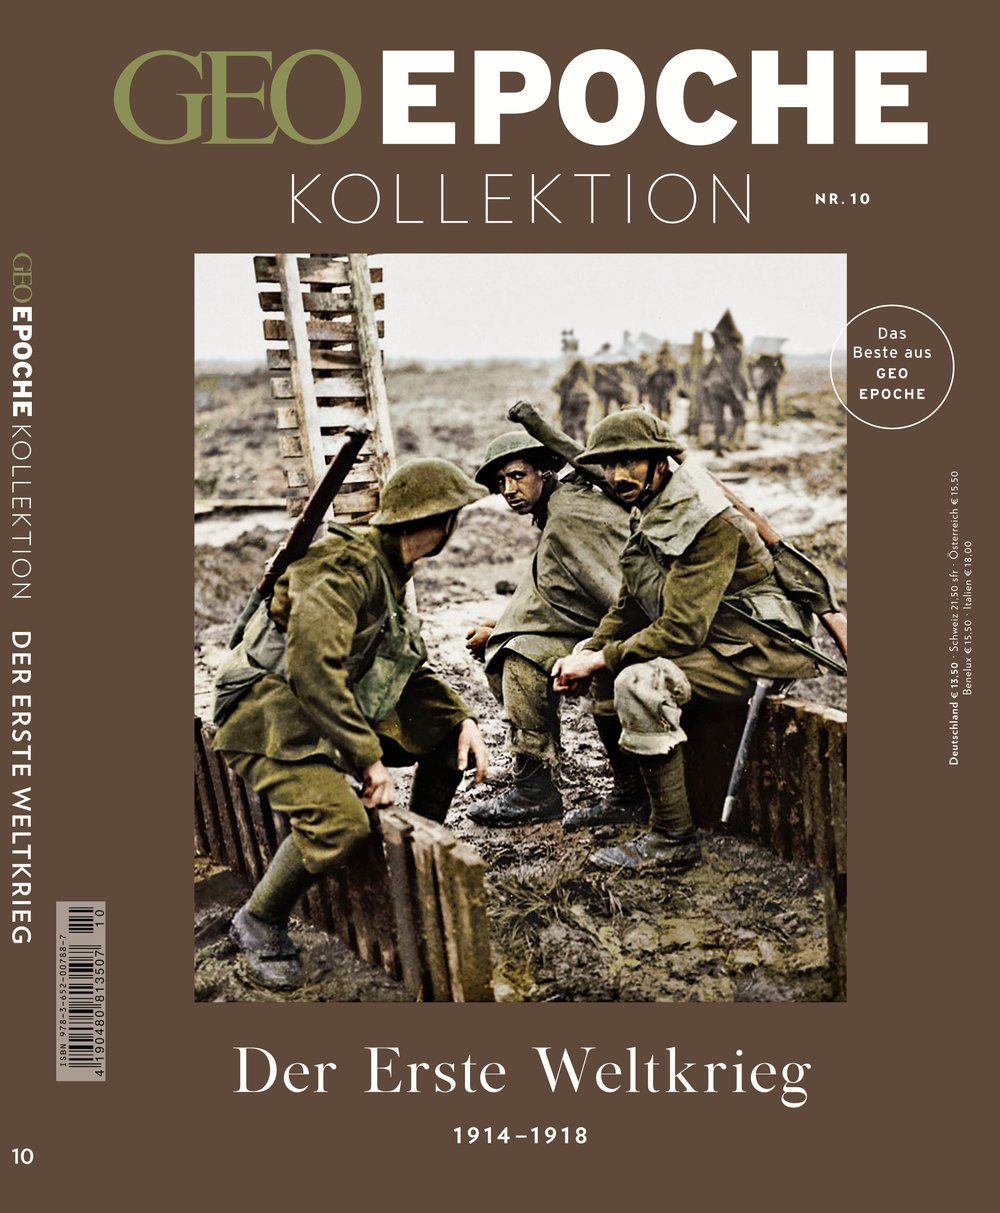 GEO EPOCHE KOLLEKTION 10/2018